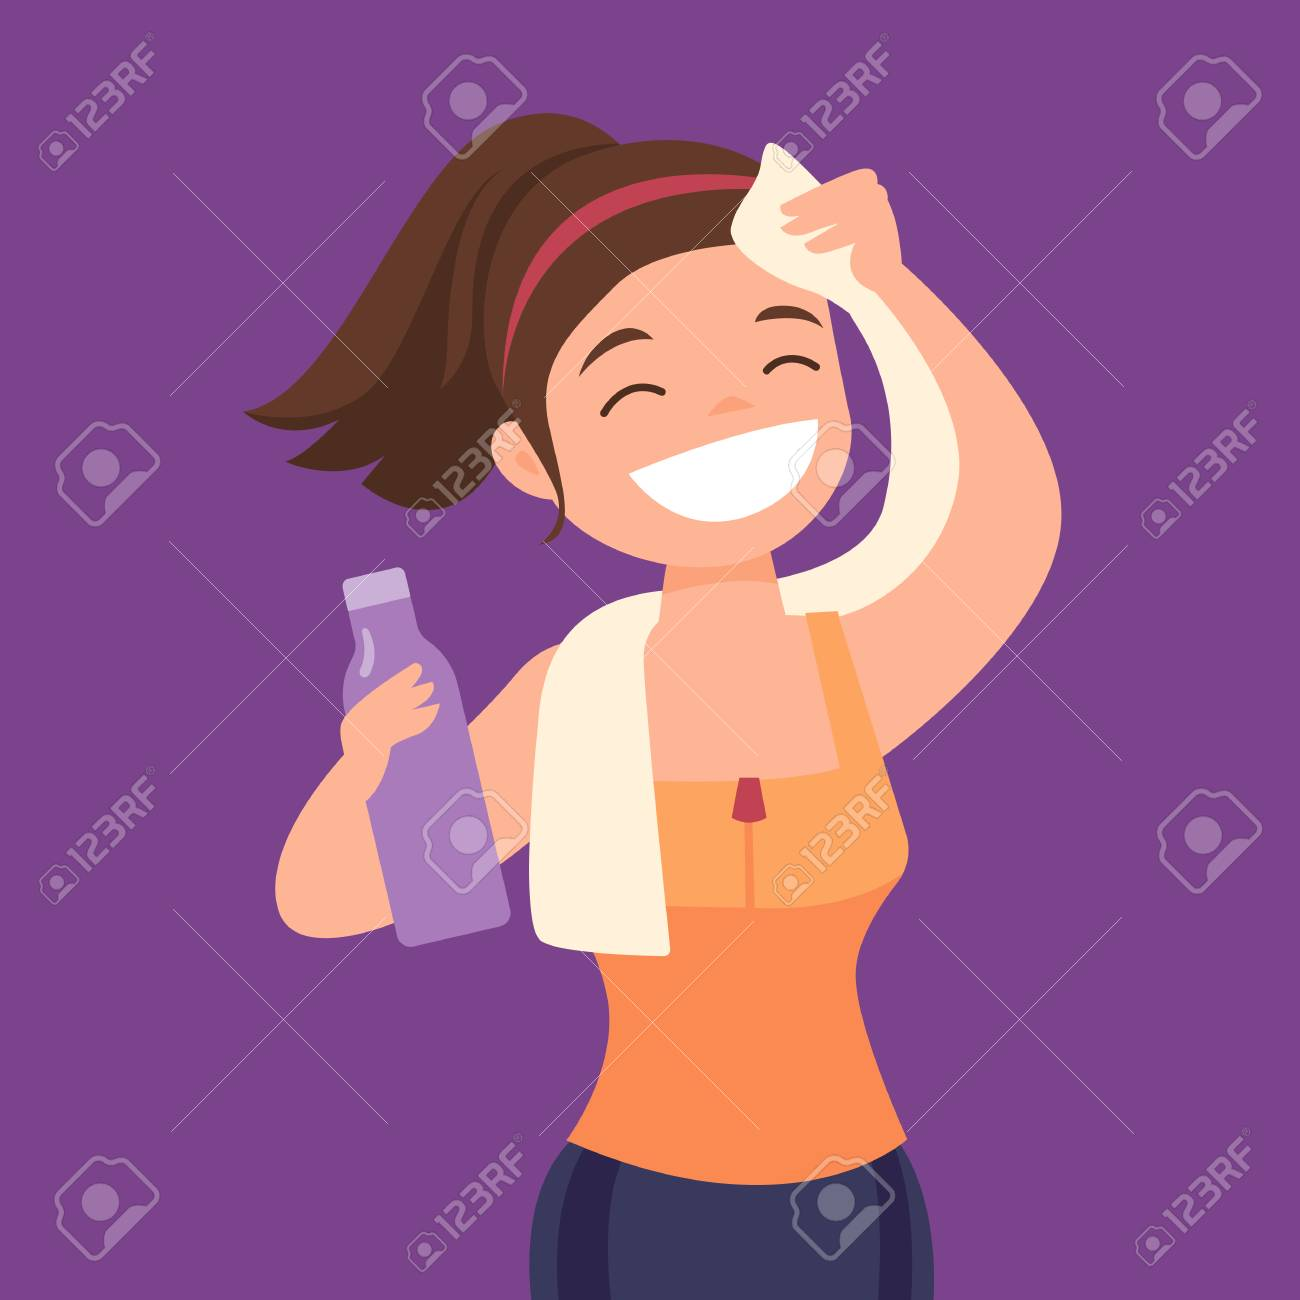 A Blonde Woman Sweating Profusely Stock Photo, Picture And Royalty Free  Image. Image 8068983.